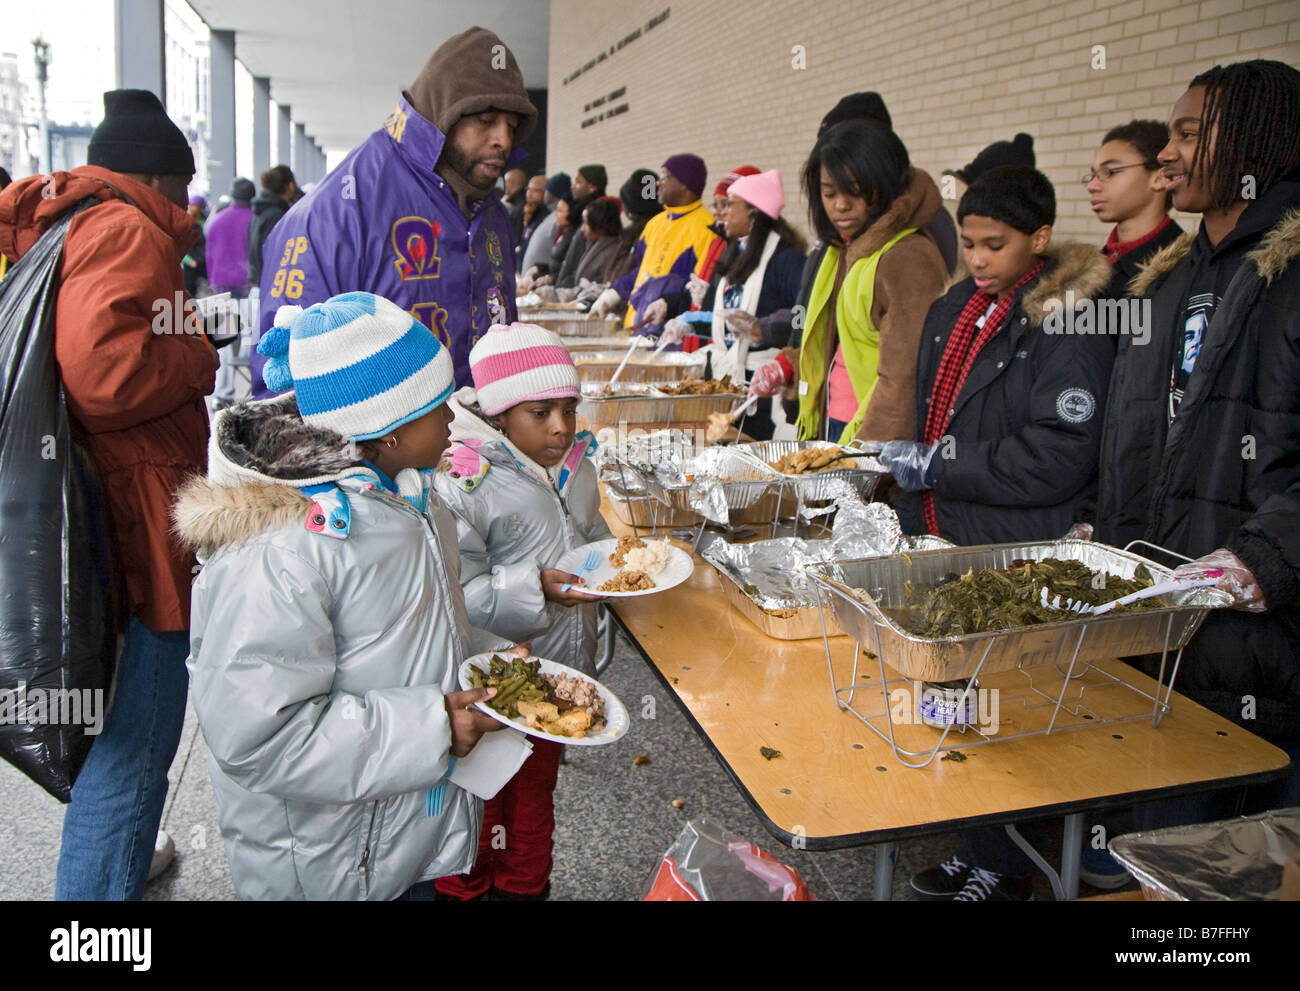 Soup Kitchen Volunteers Serve Meal To The Homeless At Outdoor Soup Kitchen